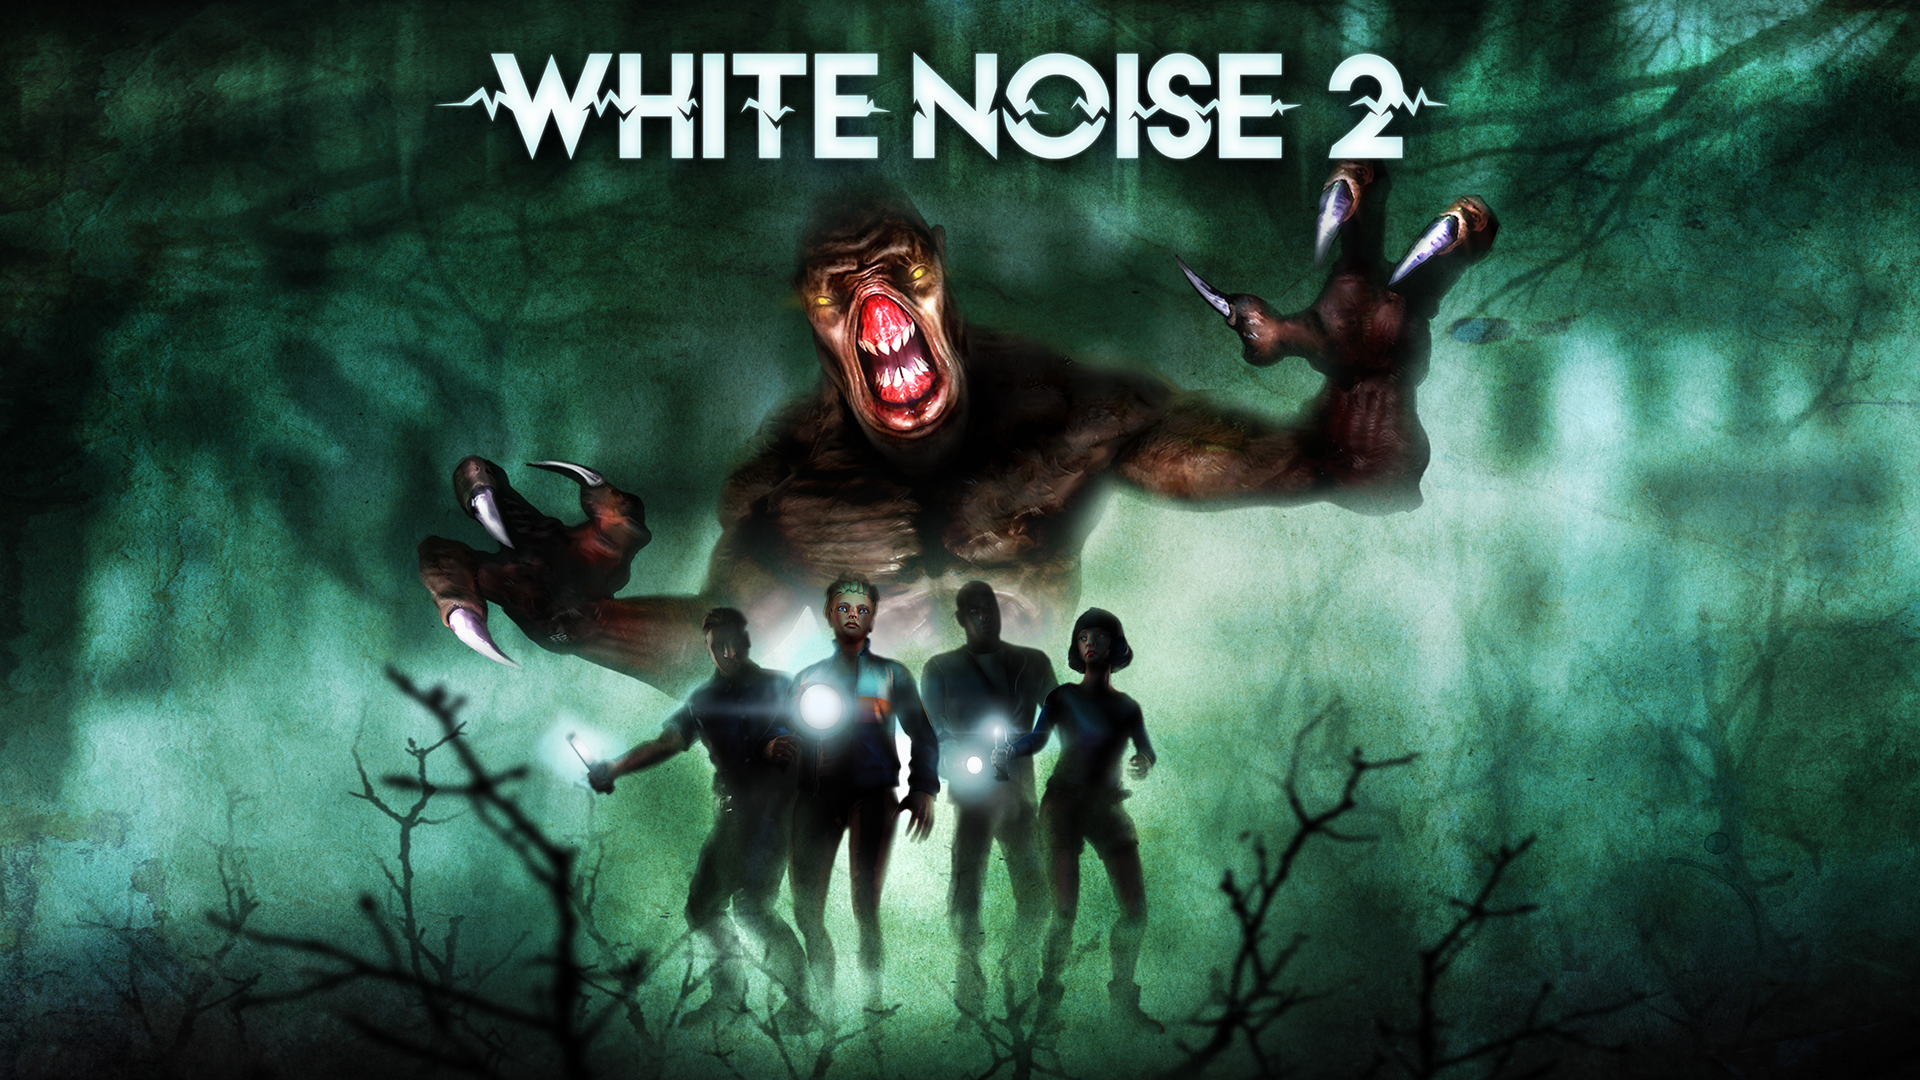 Horror Games For Xbox 1 : White noise 2 xbox one now available for pre order milkstone studios